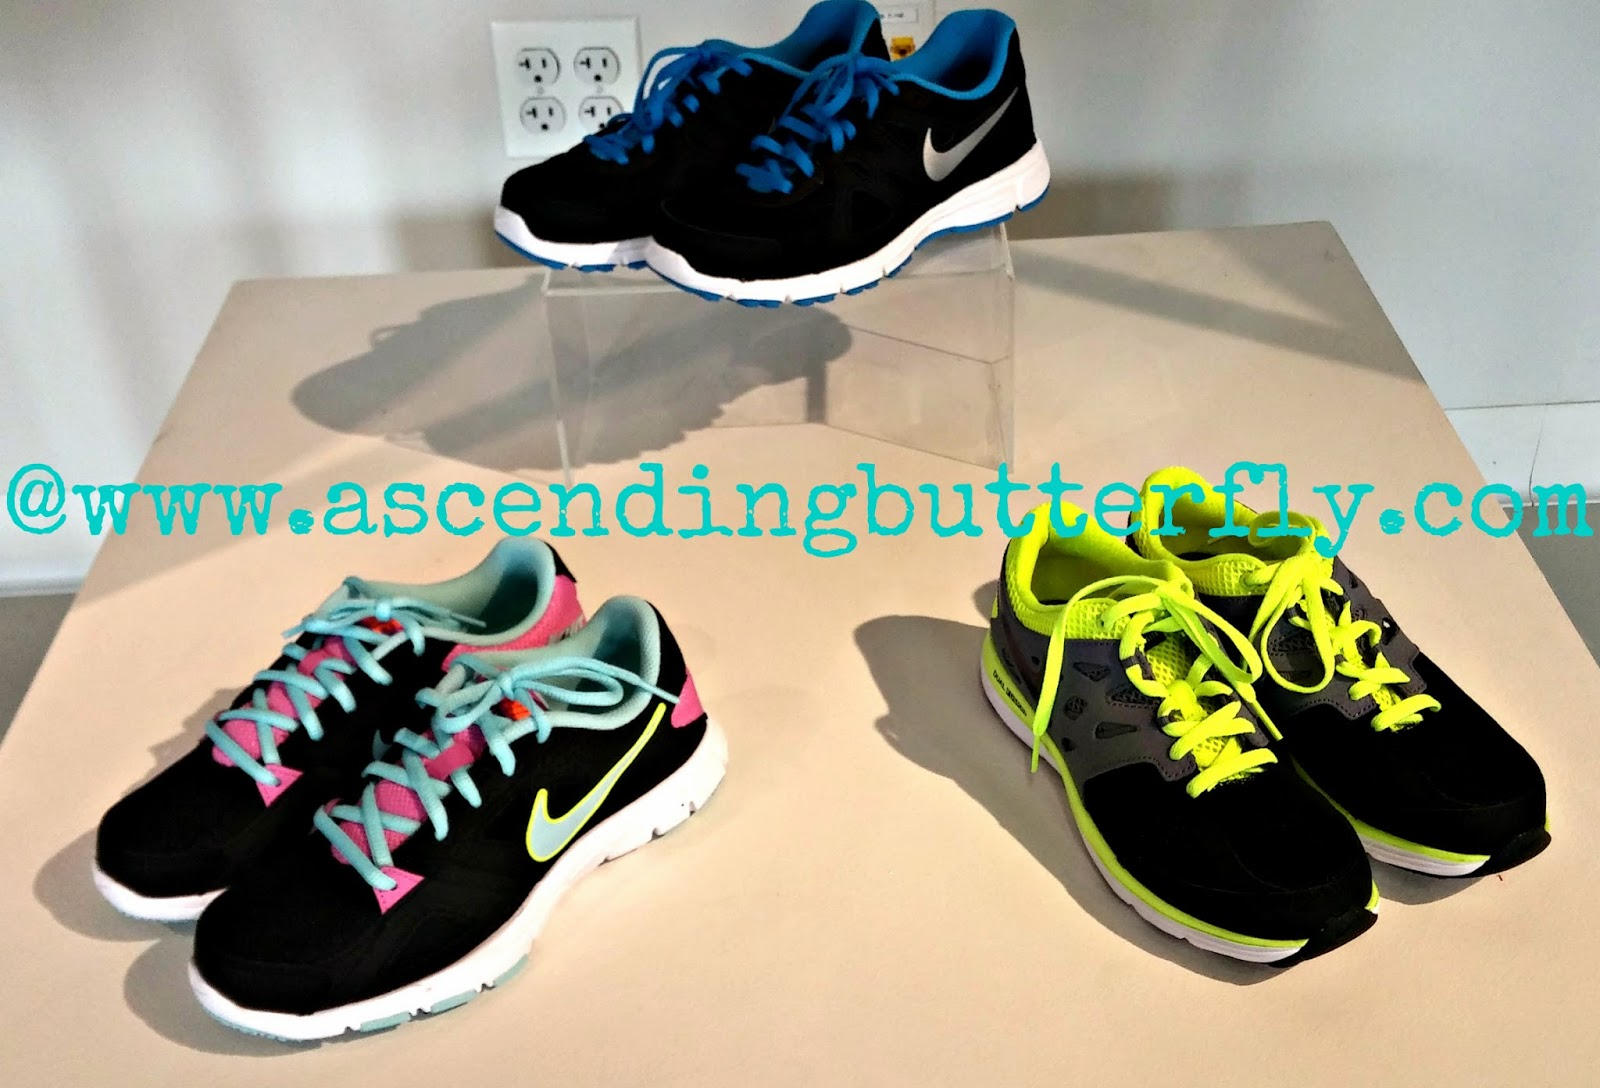 Athletic Footwear on display at JCPenney 2014 Back to School Press Preview